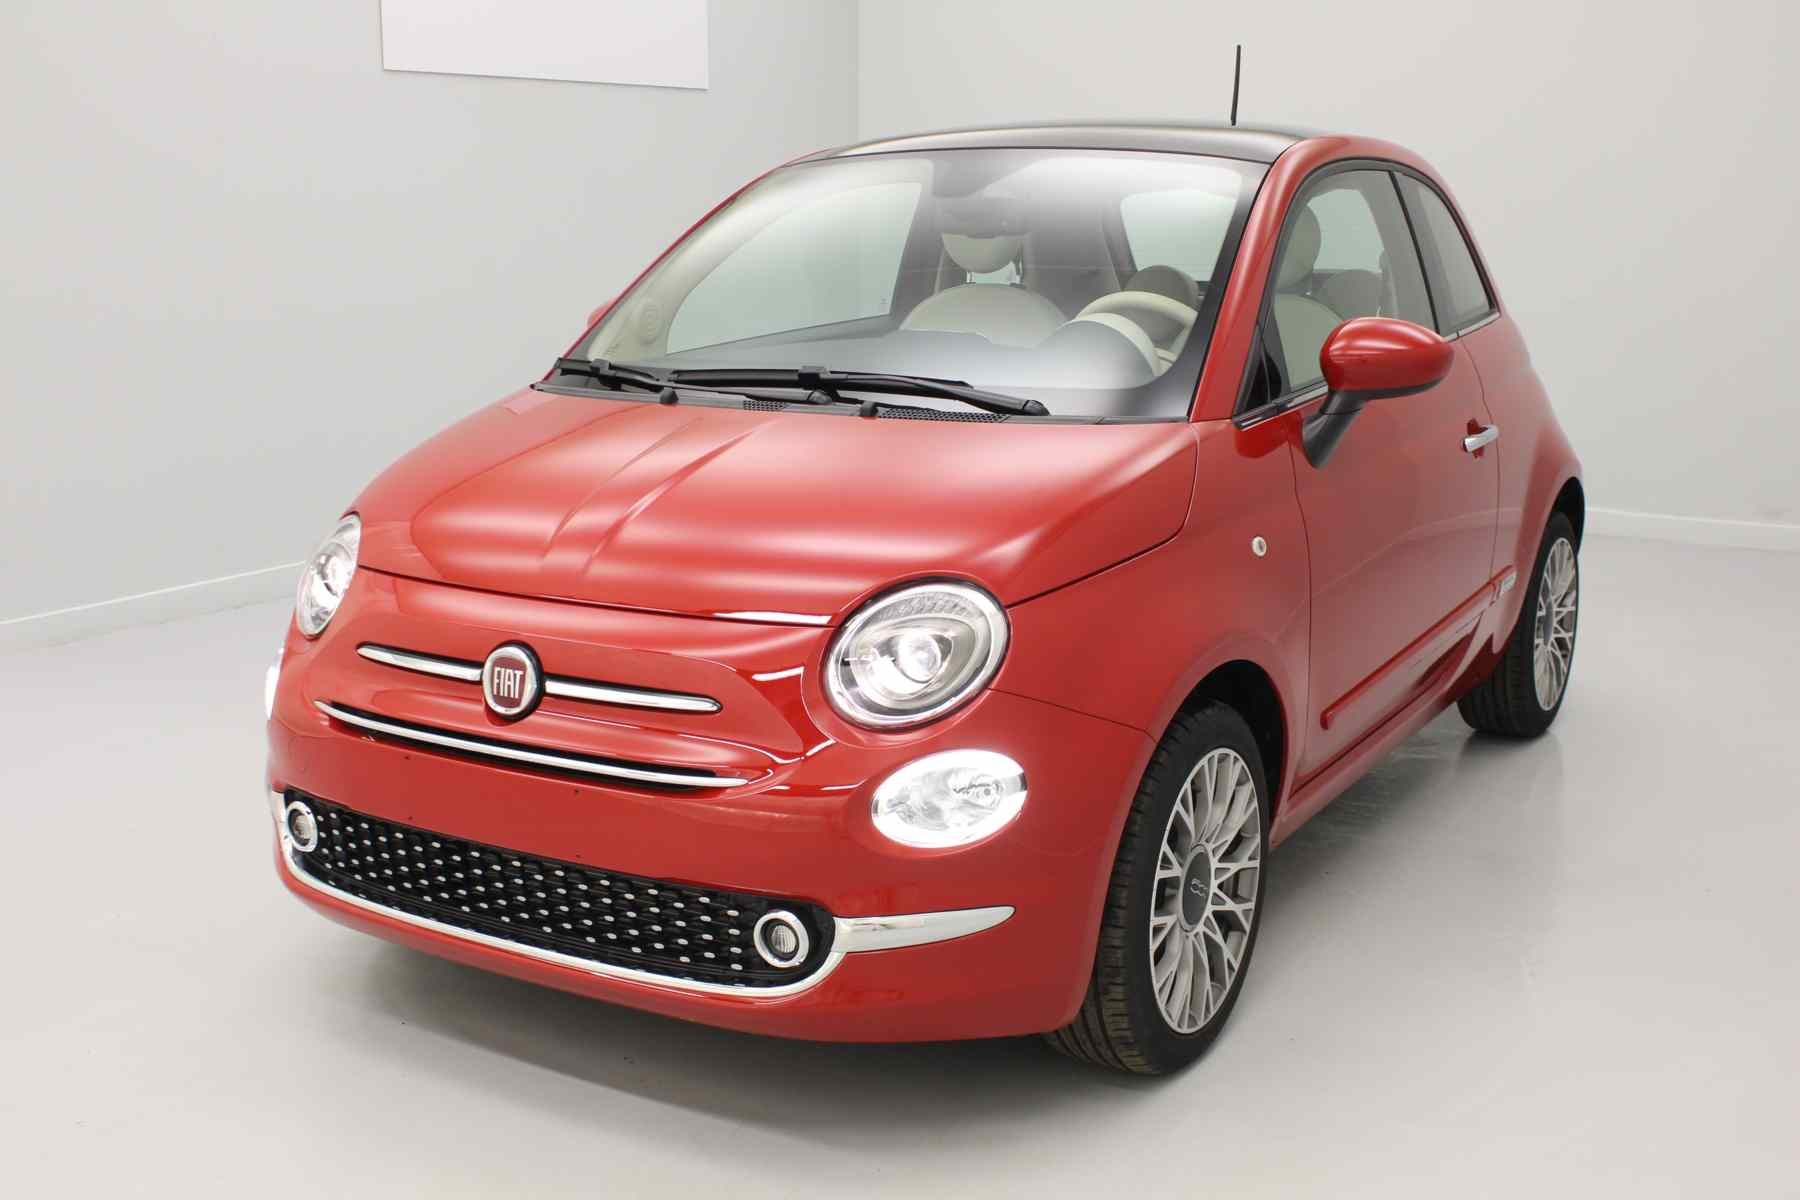 FIAT 500 1.2 69 ch Lounge Eco Pack Pasodoble Red + Climatisation automatique + Jantes 16'' Spider avec options